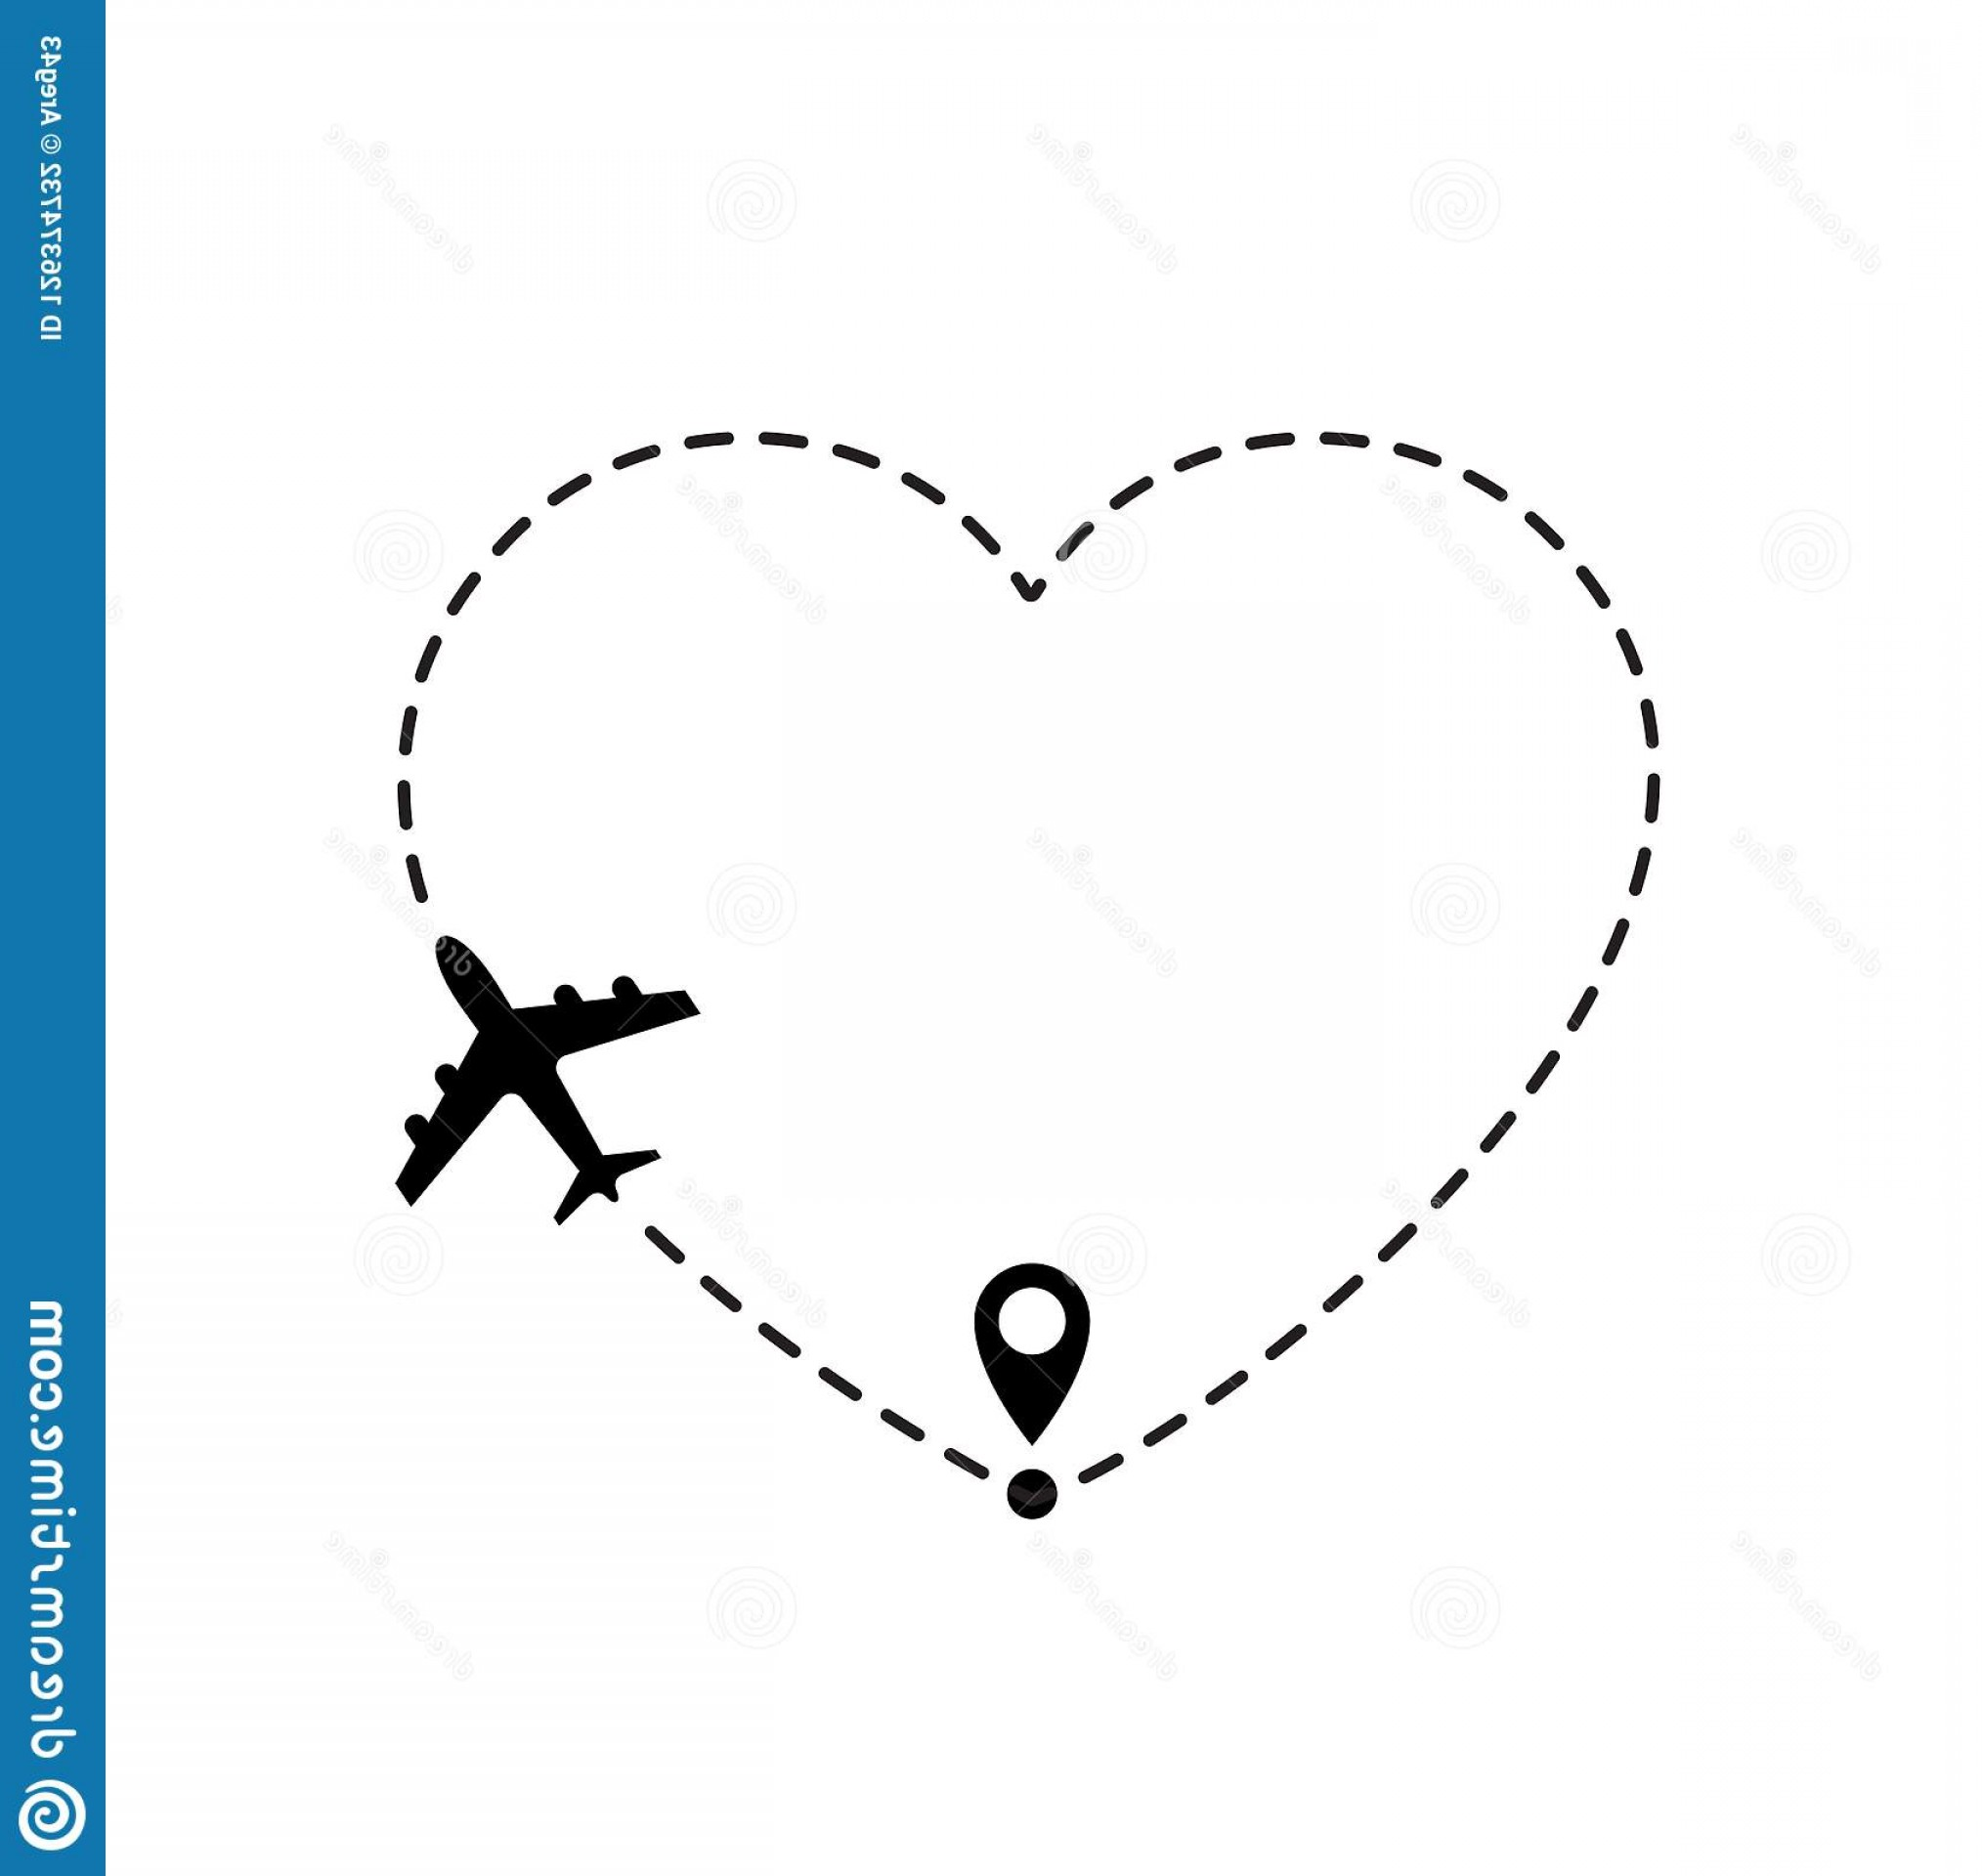 Black Heart And Plane Vector: Love Travel Route Airplane Line Path Vector Icon Air Plane Flight Route Line Trace Love Travel Route Airplane Line Path Image